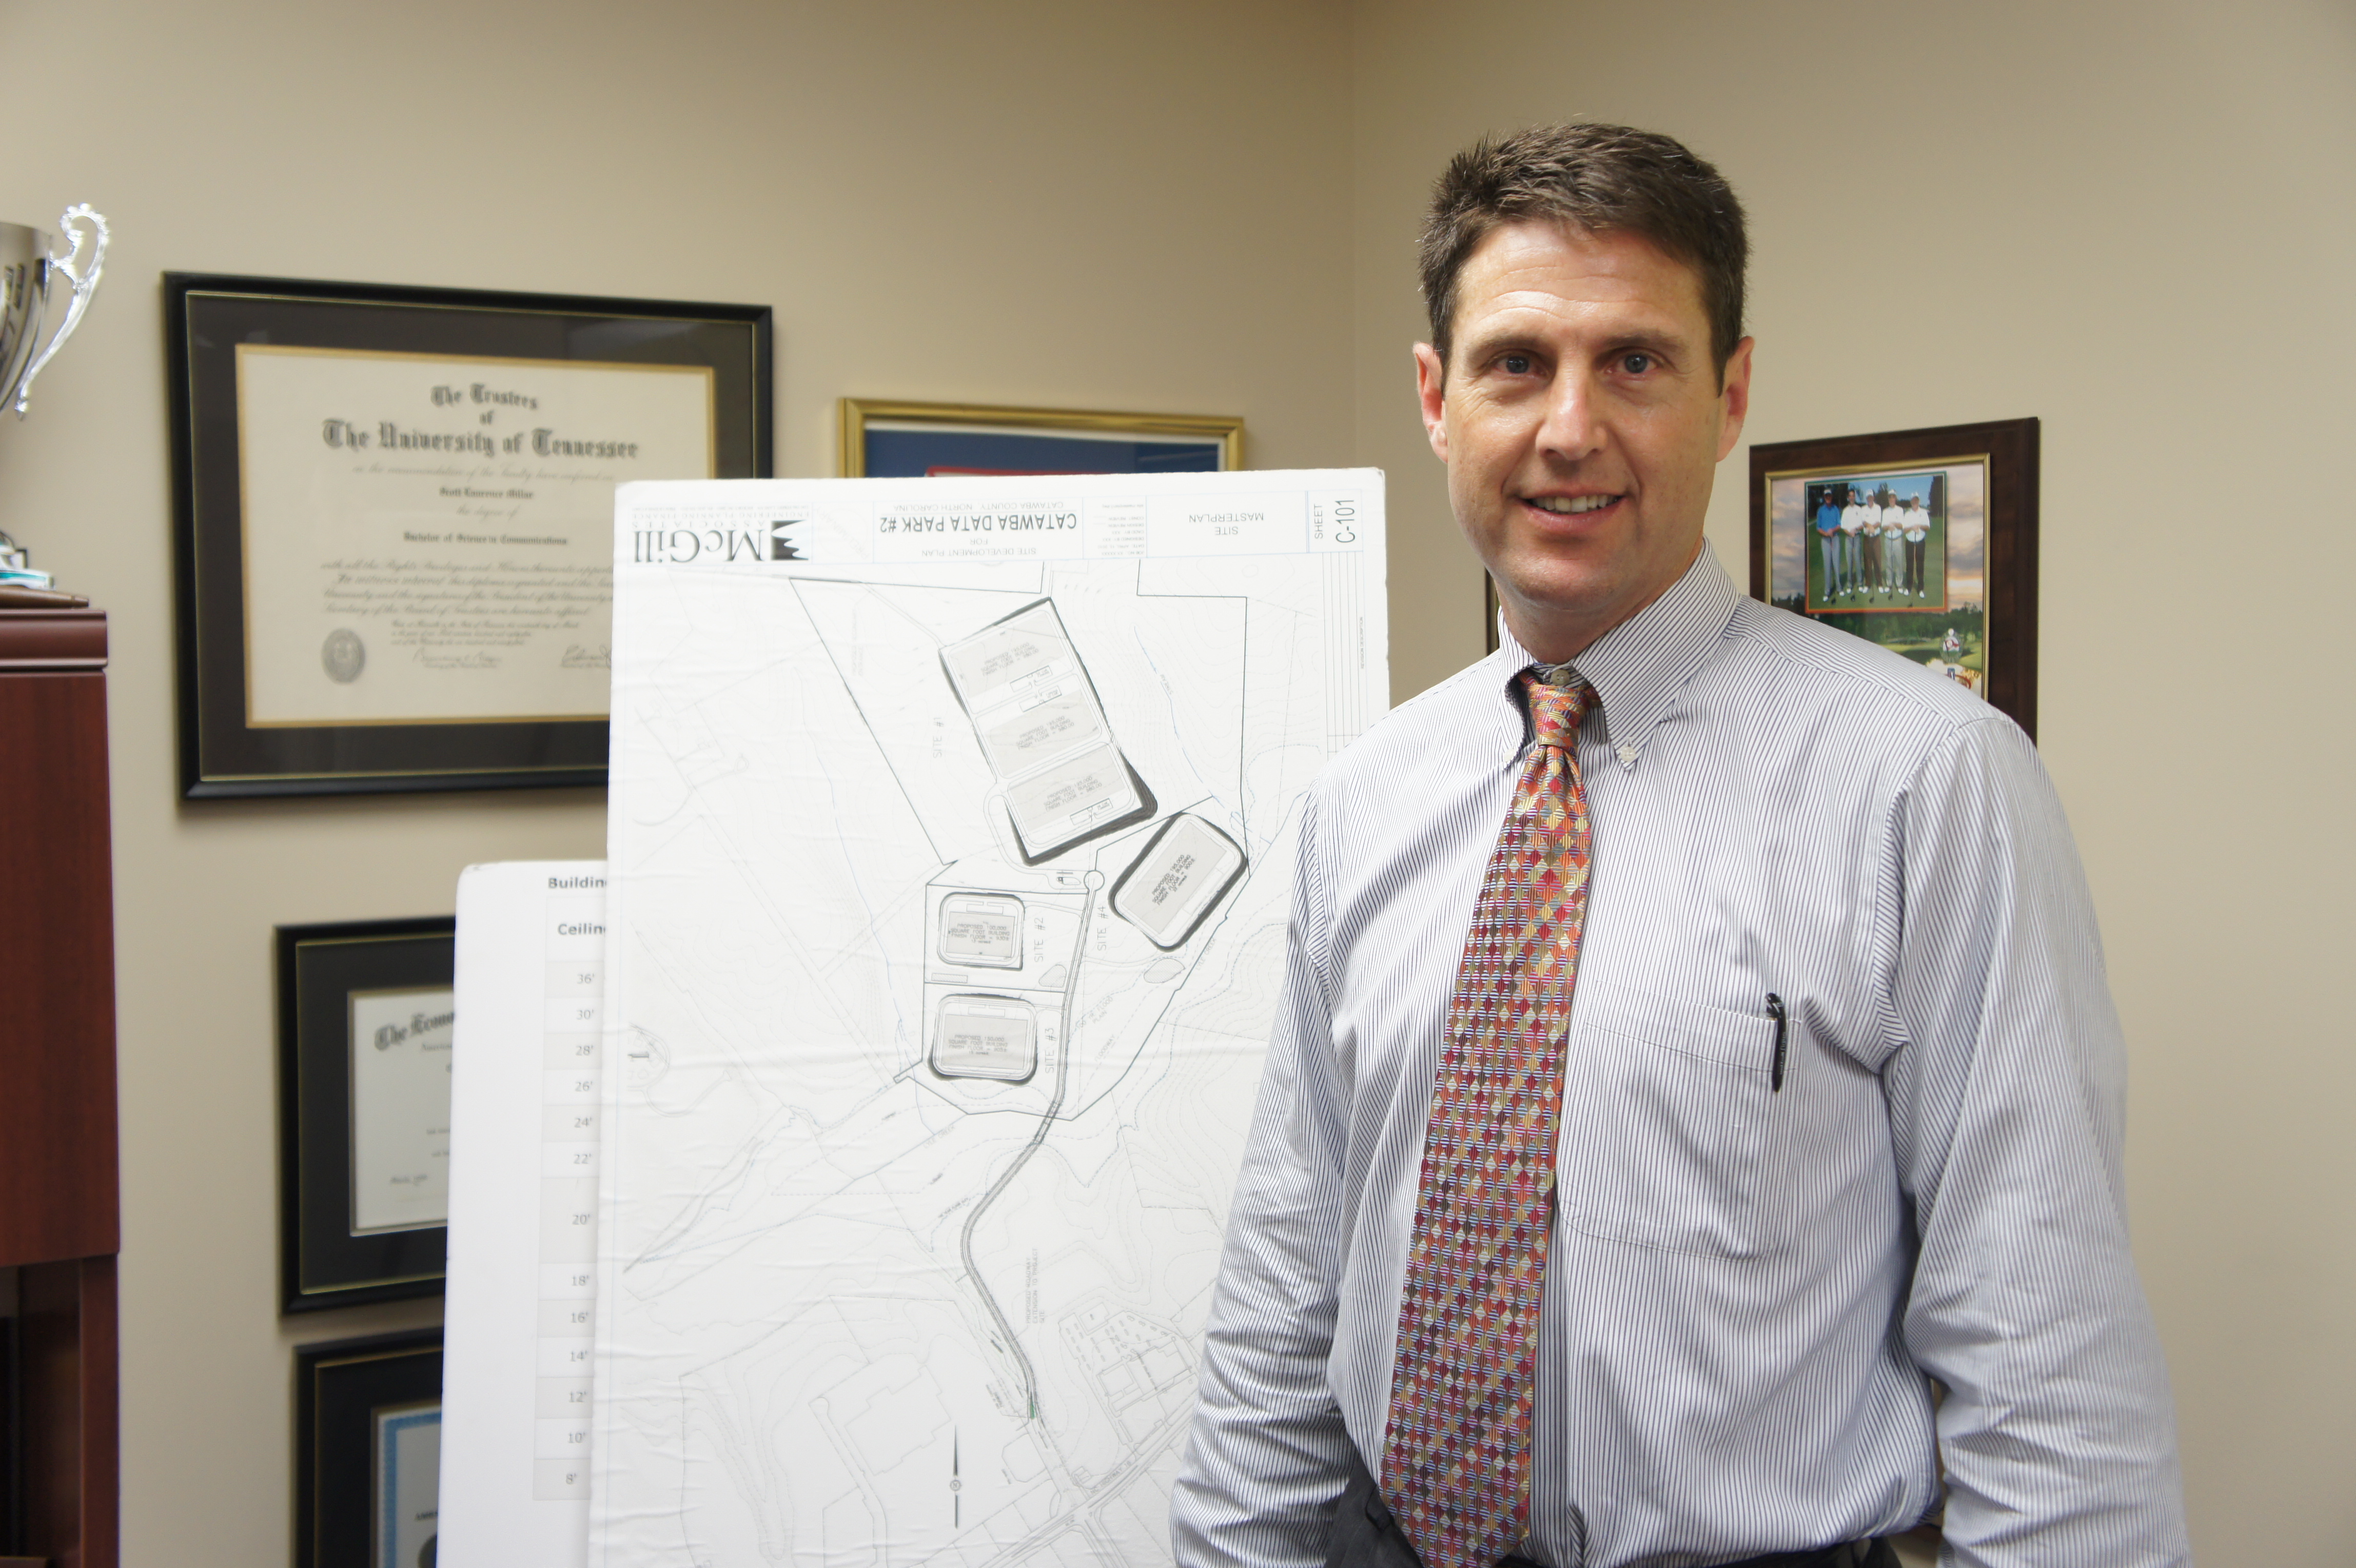 Scott Millar, President of the Catawba County Economic Development Group